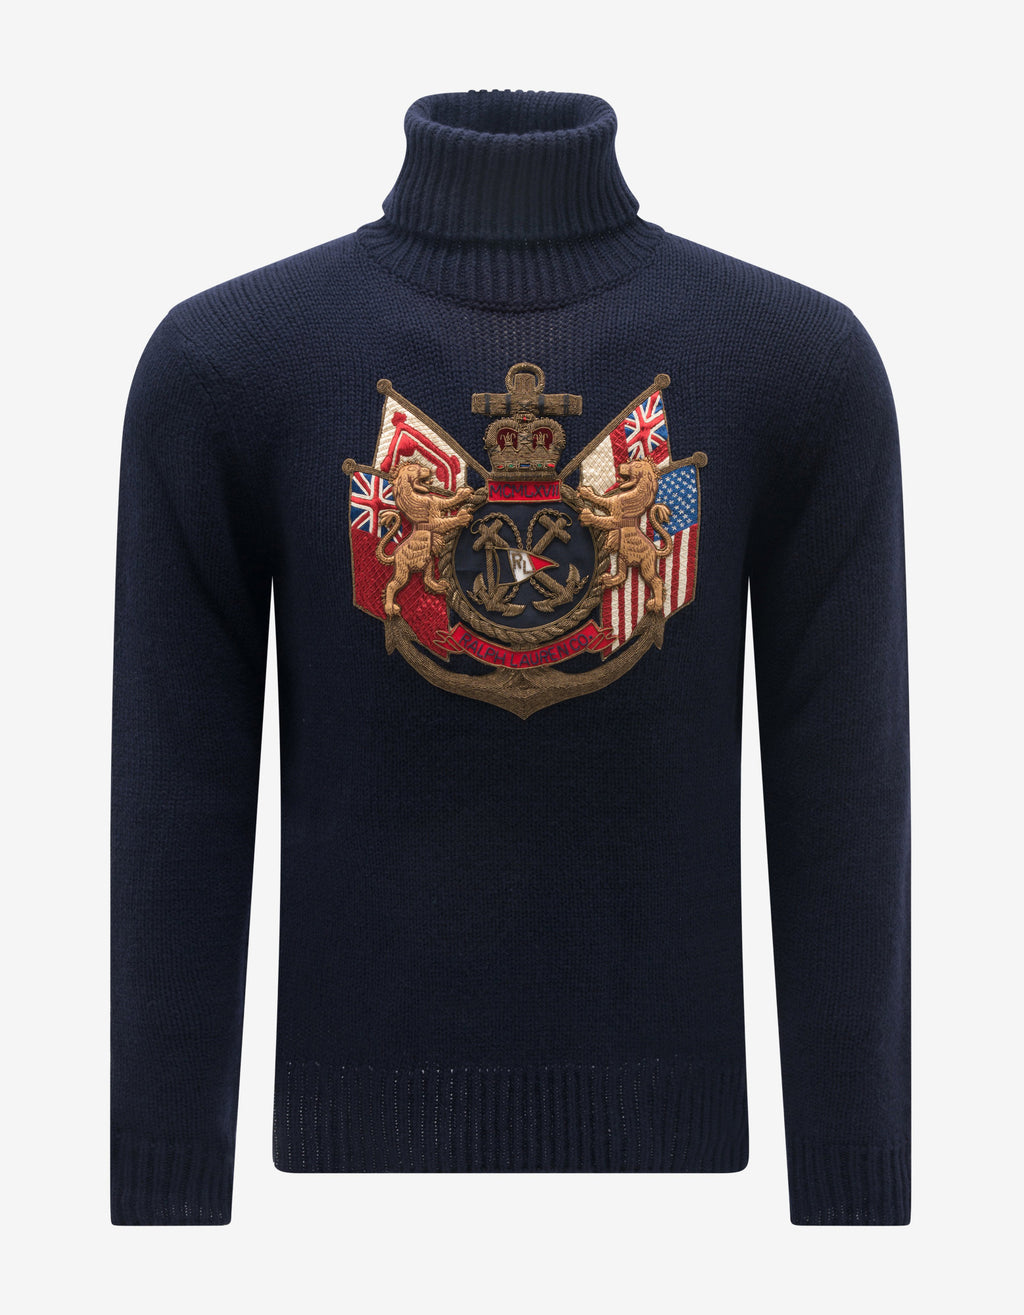 Navy Blue Embroidered Emblem Turtleneck Sweater